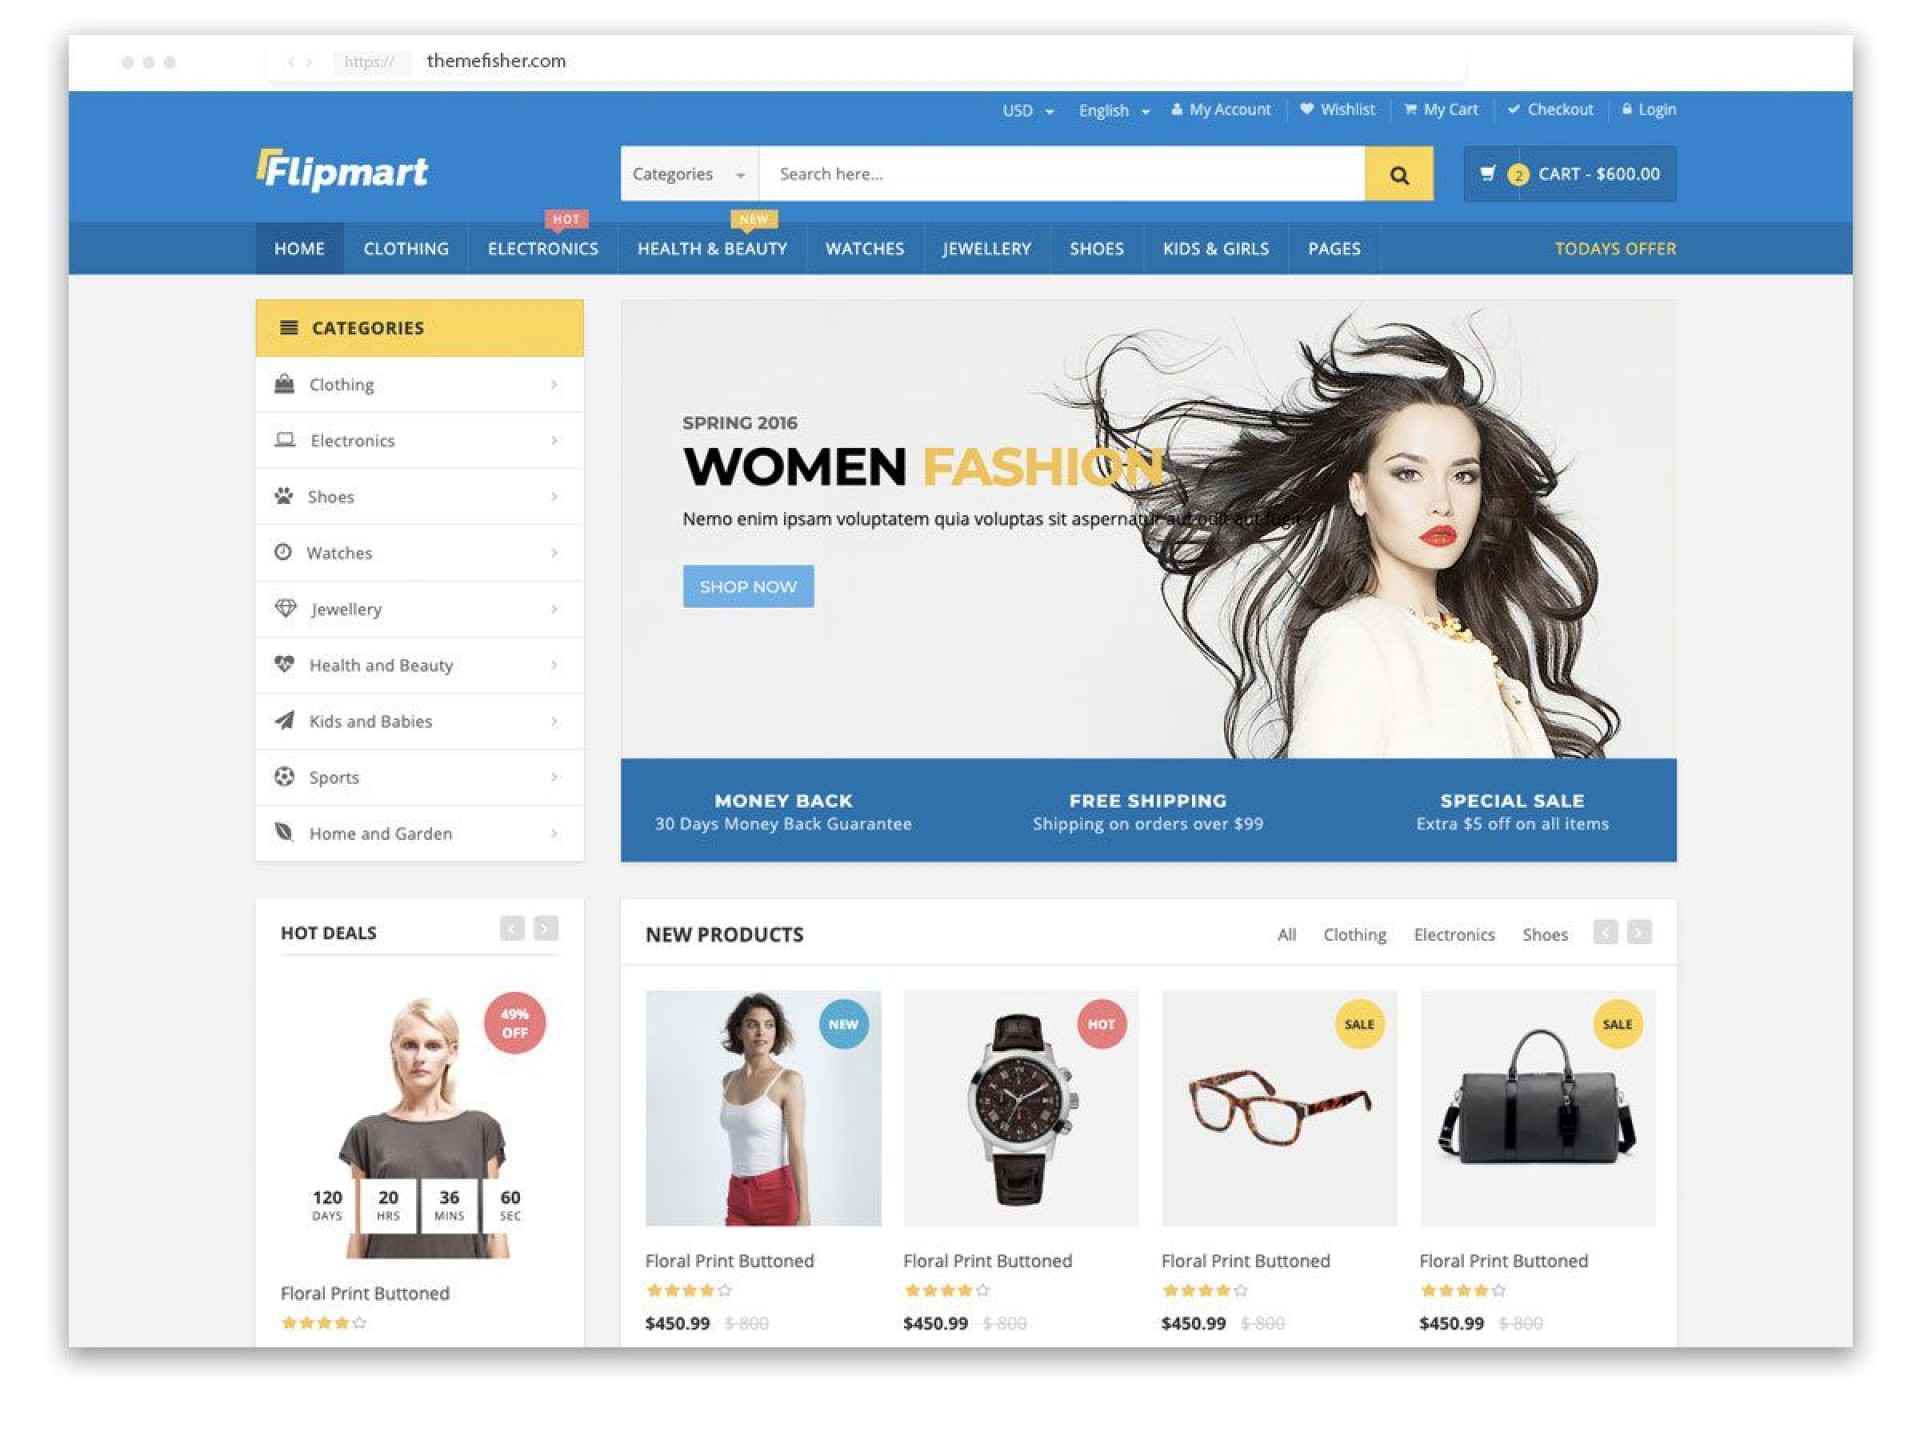 004 Incredible Free Website Template Download Html And Cs Jquery For Ecommerce Image 1920